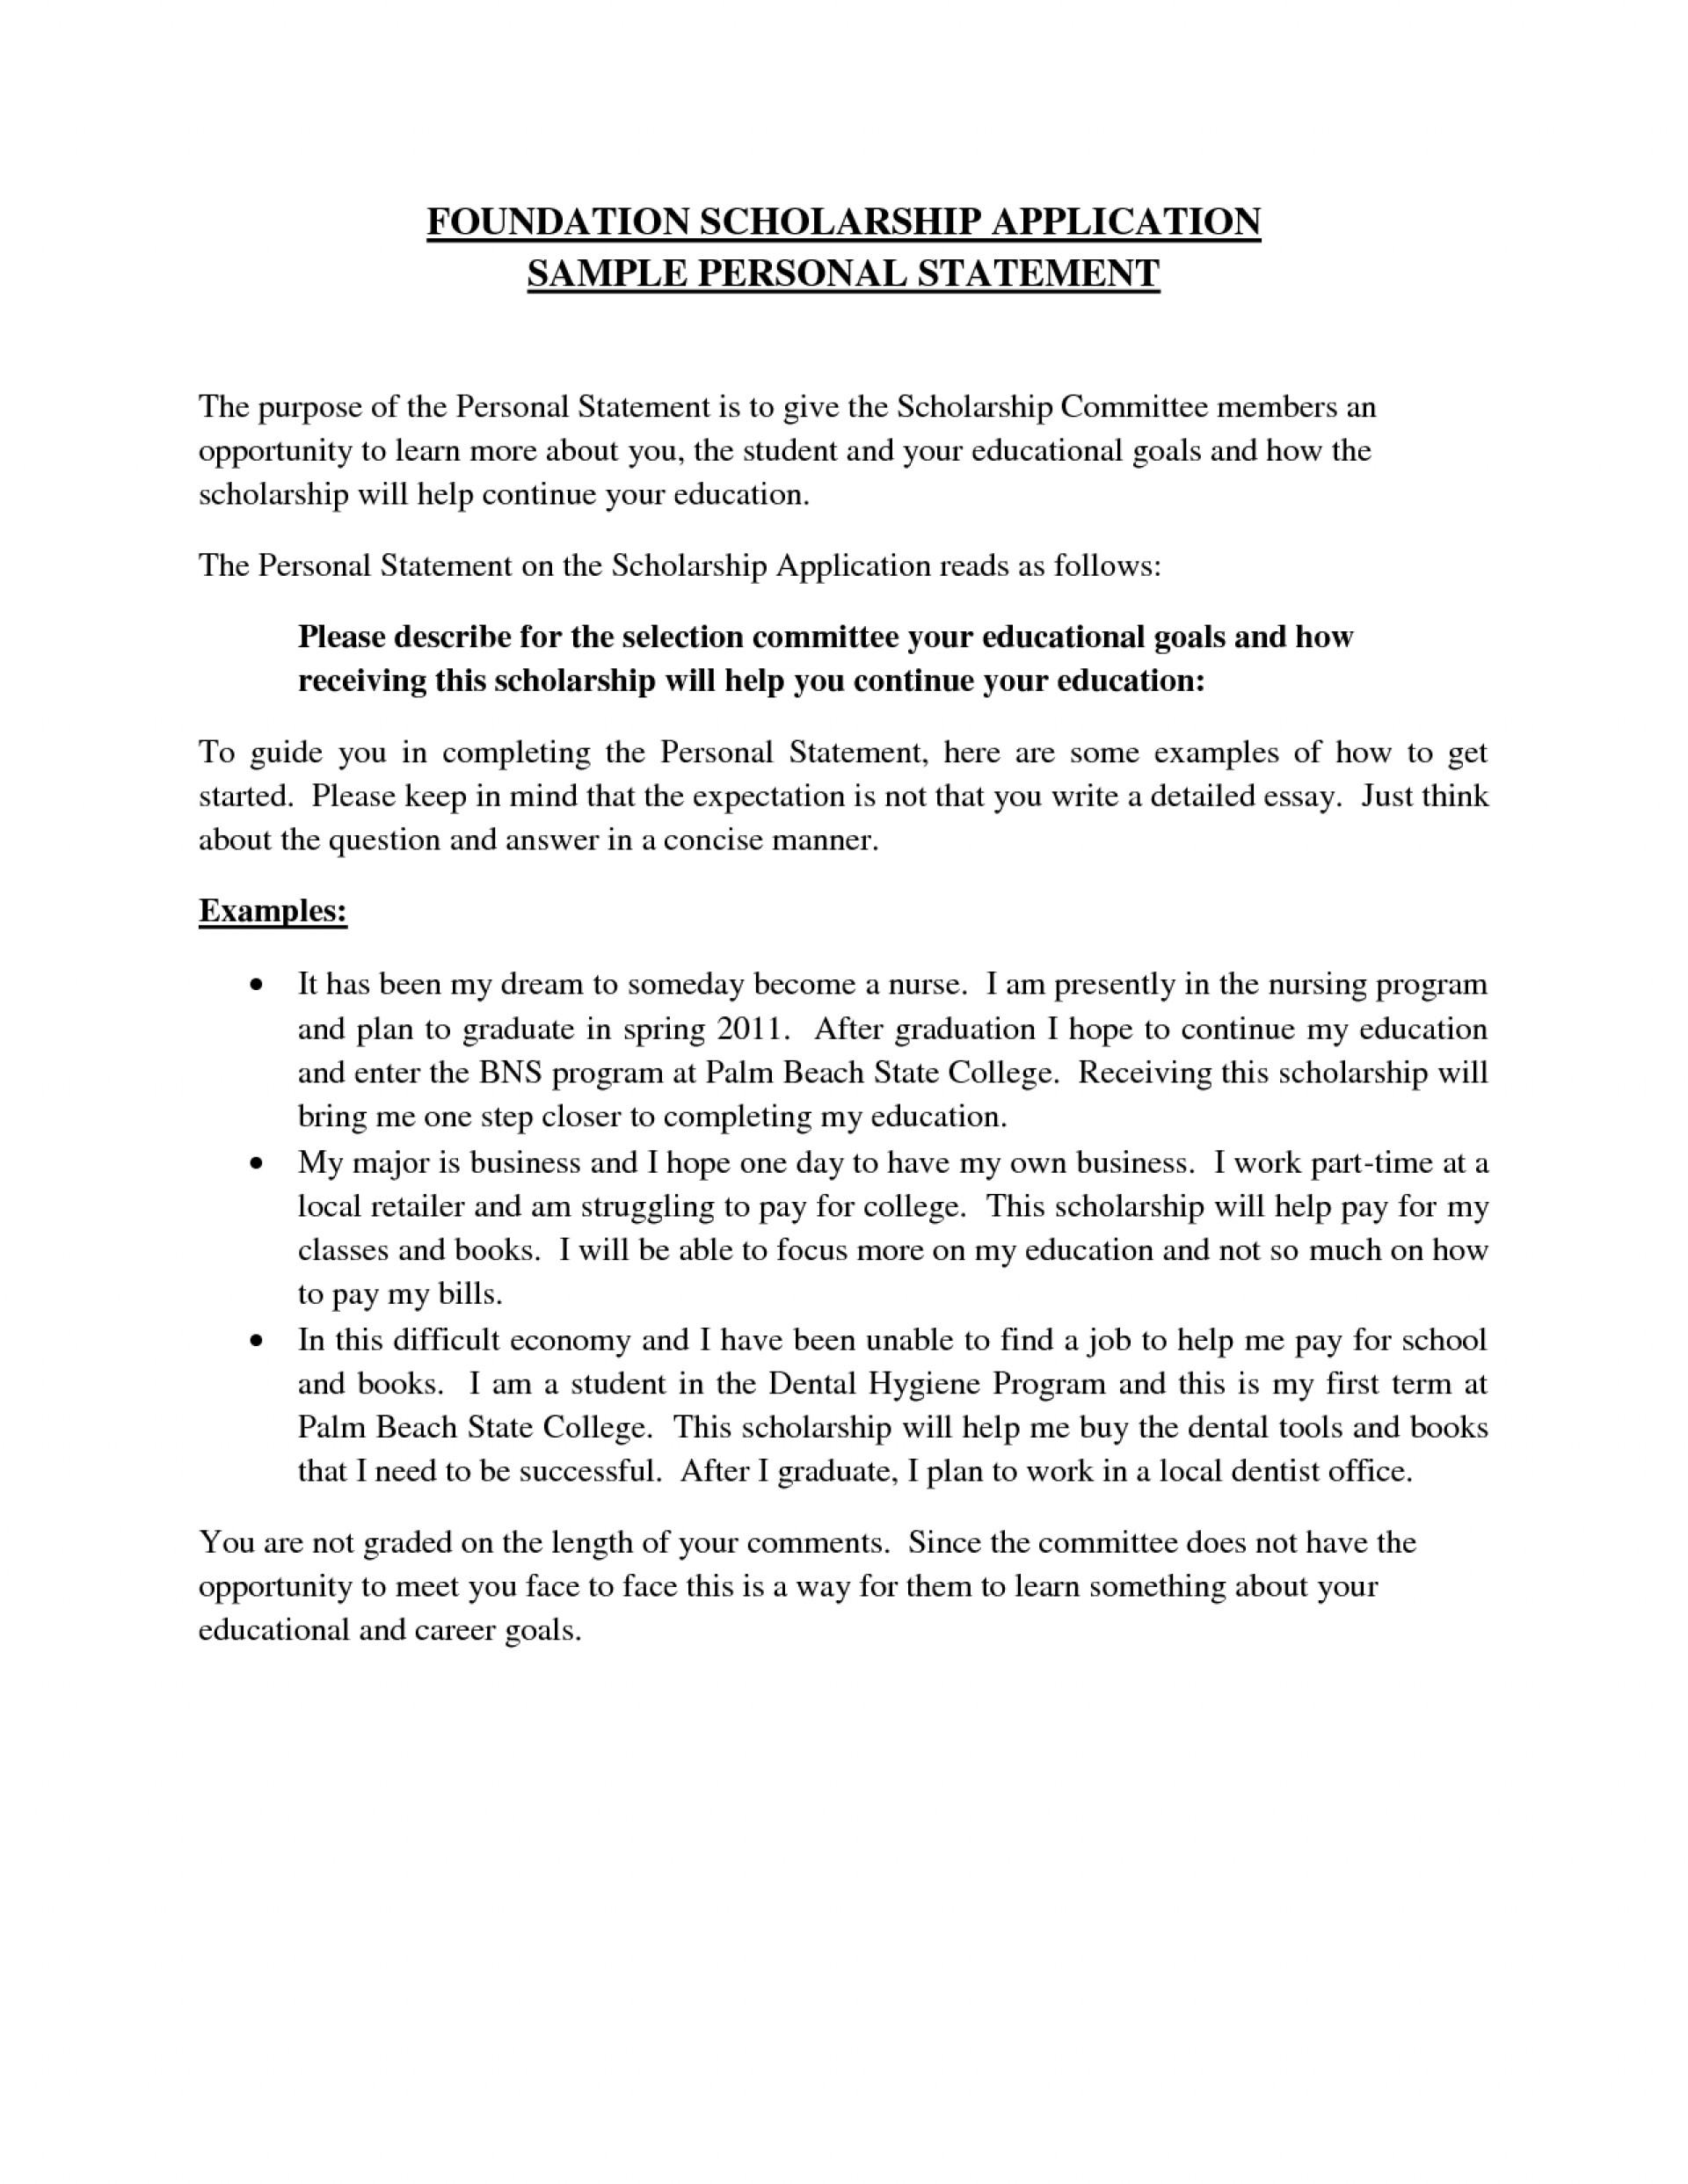 Essay on specification of cell phone